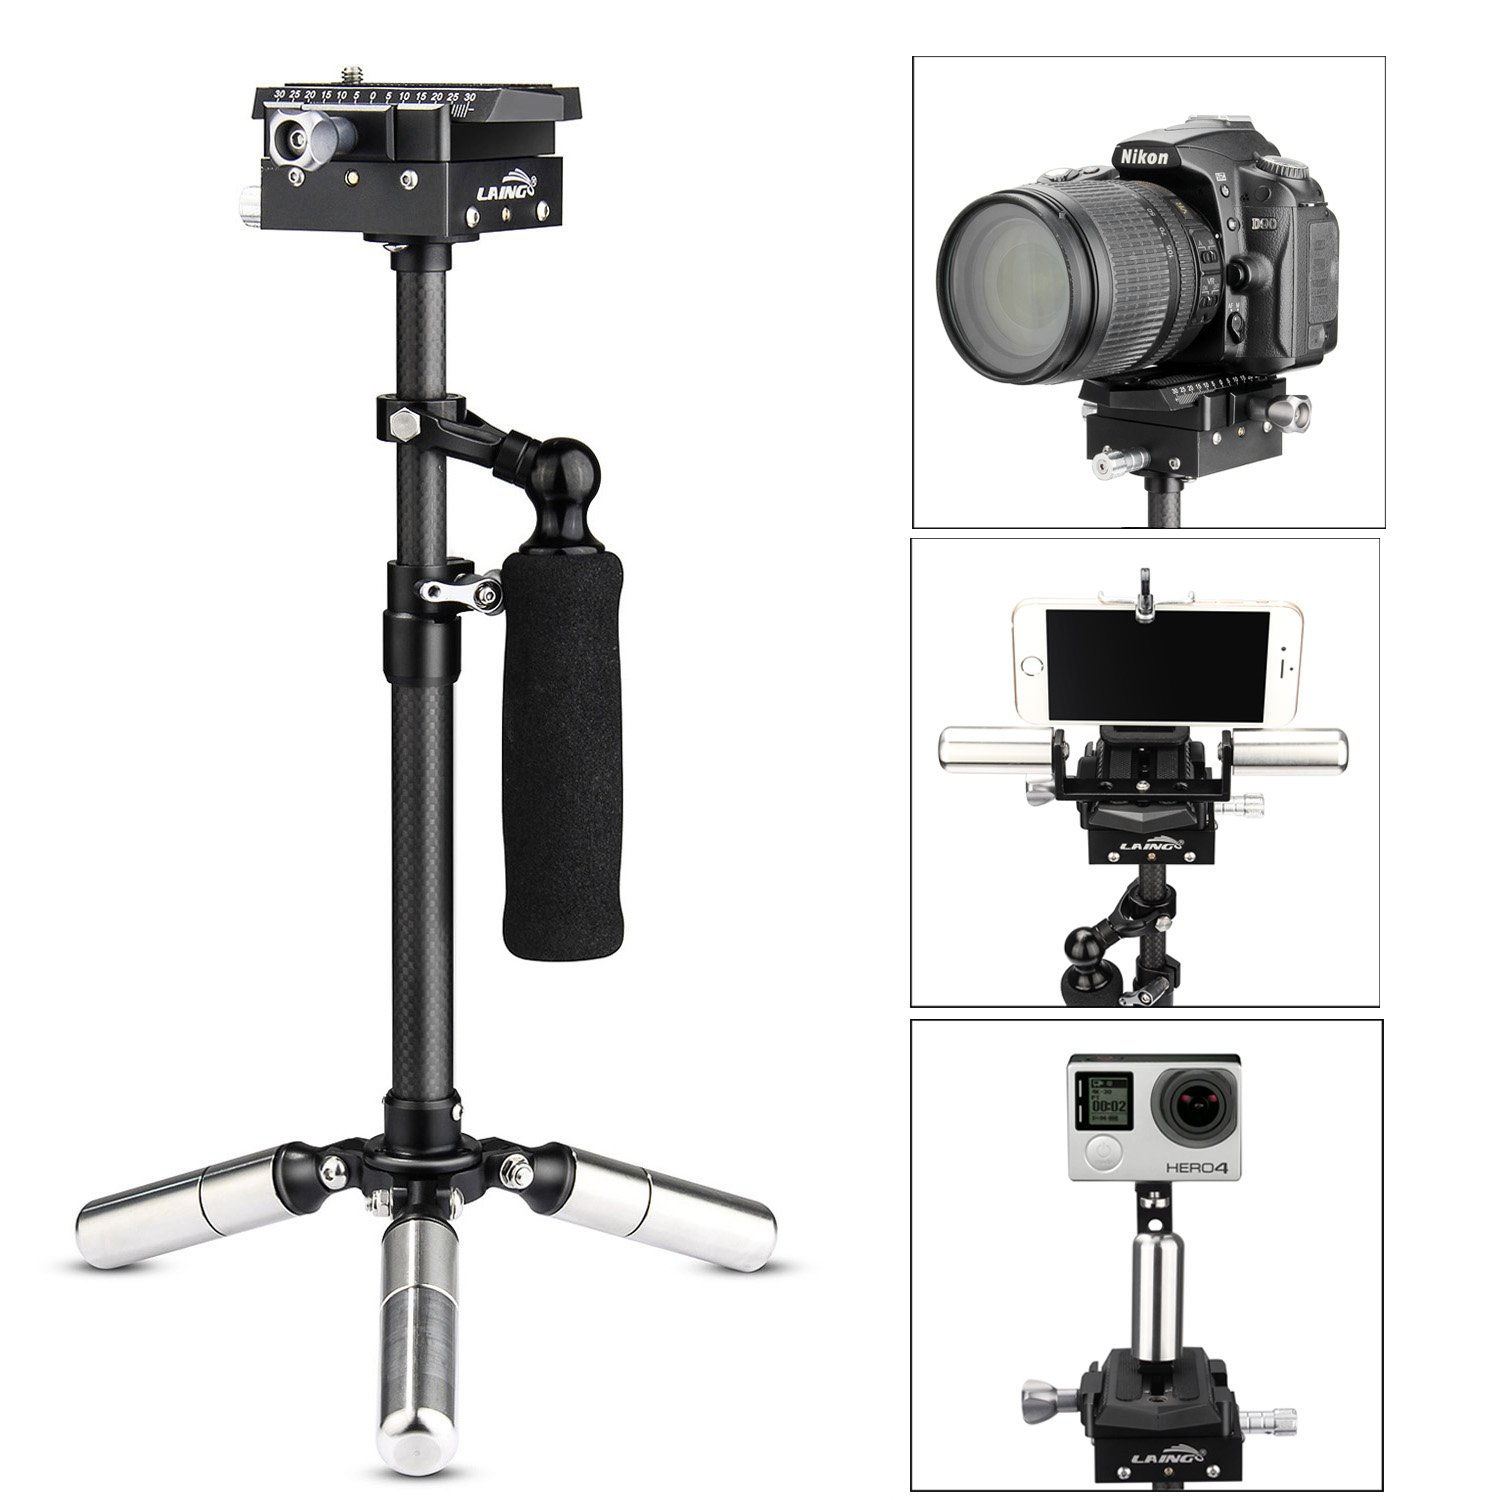 LAING H5 Mini Carbon Fiber Handheld Stabilizer with 6.17lb//2.8kg Loading Capacity for DSLR Cameras Compact Cameras and DVS